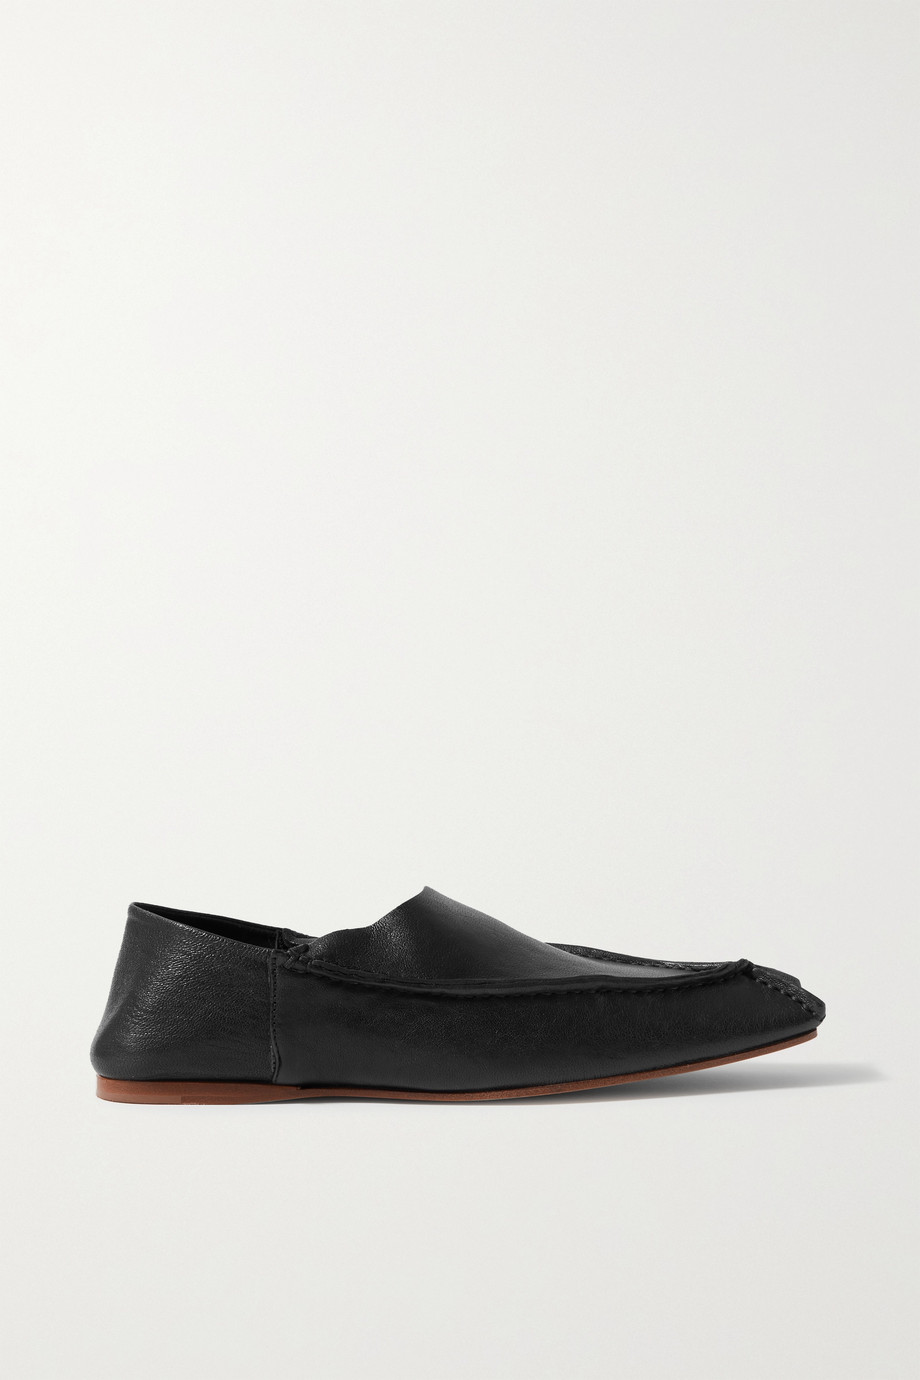 ACNE STUDIOS Leather collapsible-heel loafers